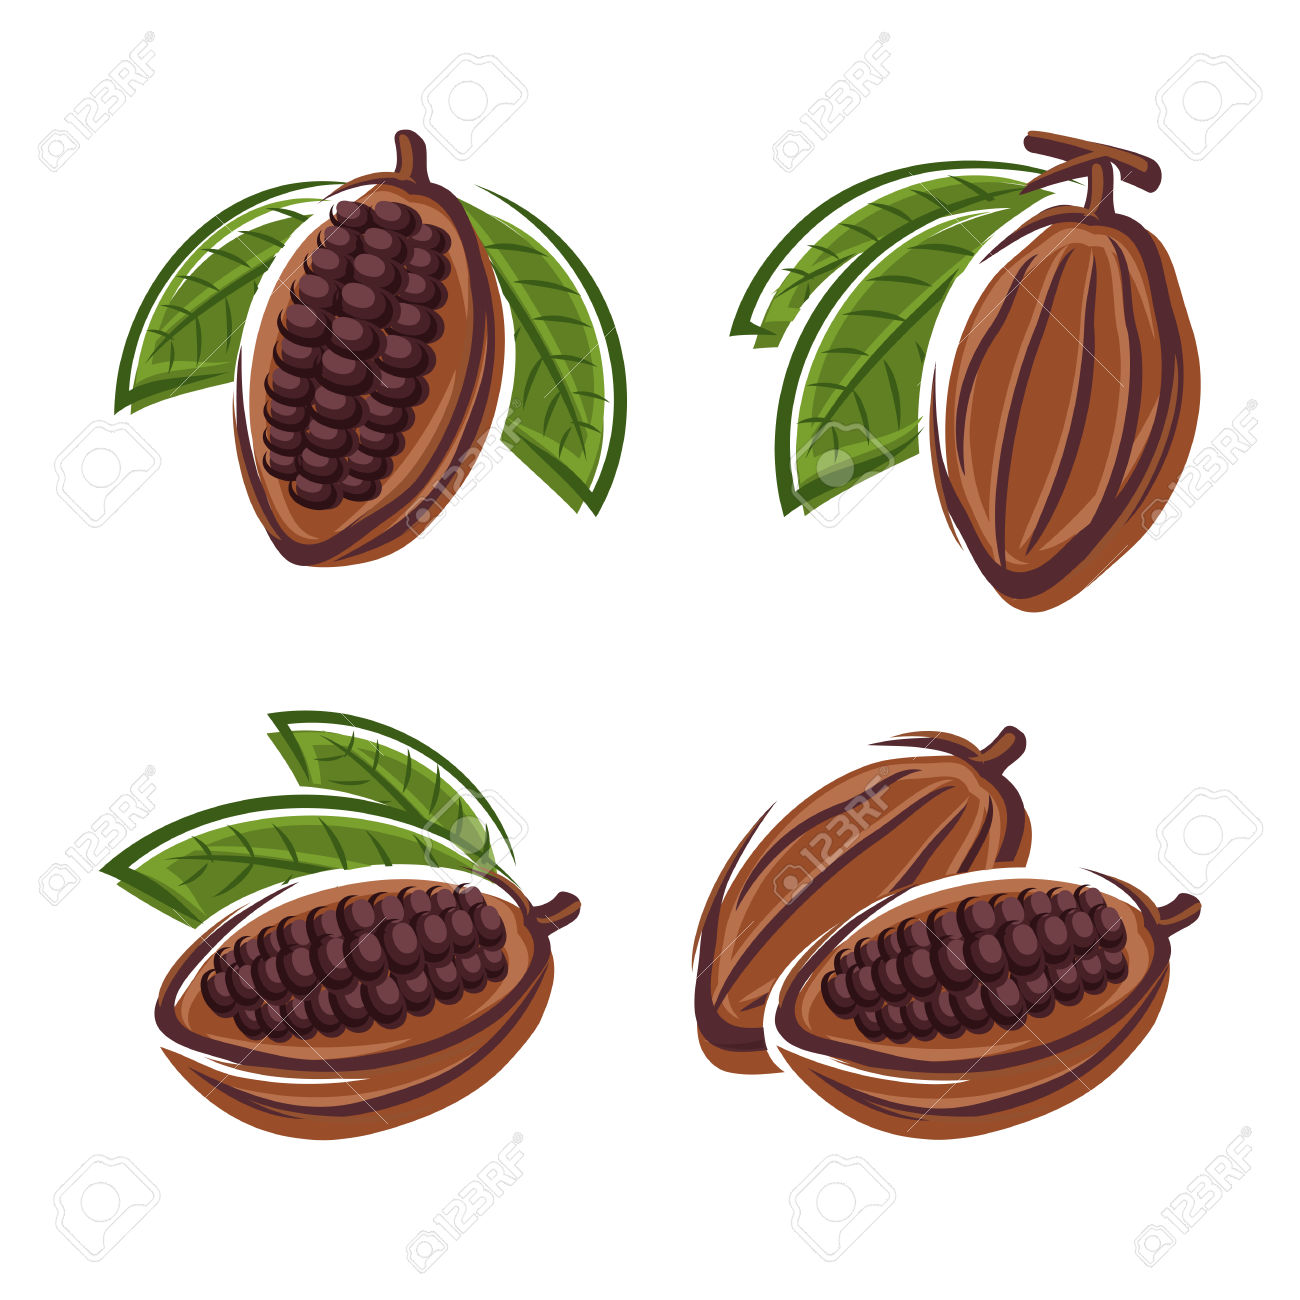 Cacao Beans Set Vector Royalty Free Cliparts, Vectors, And Stock.